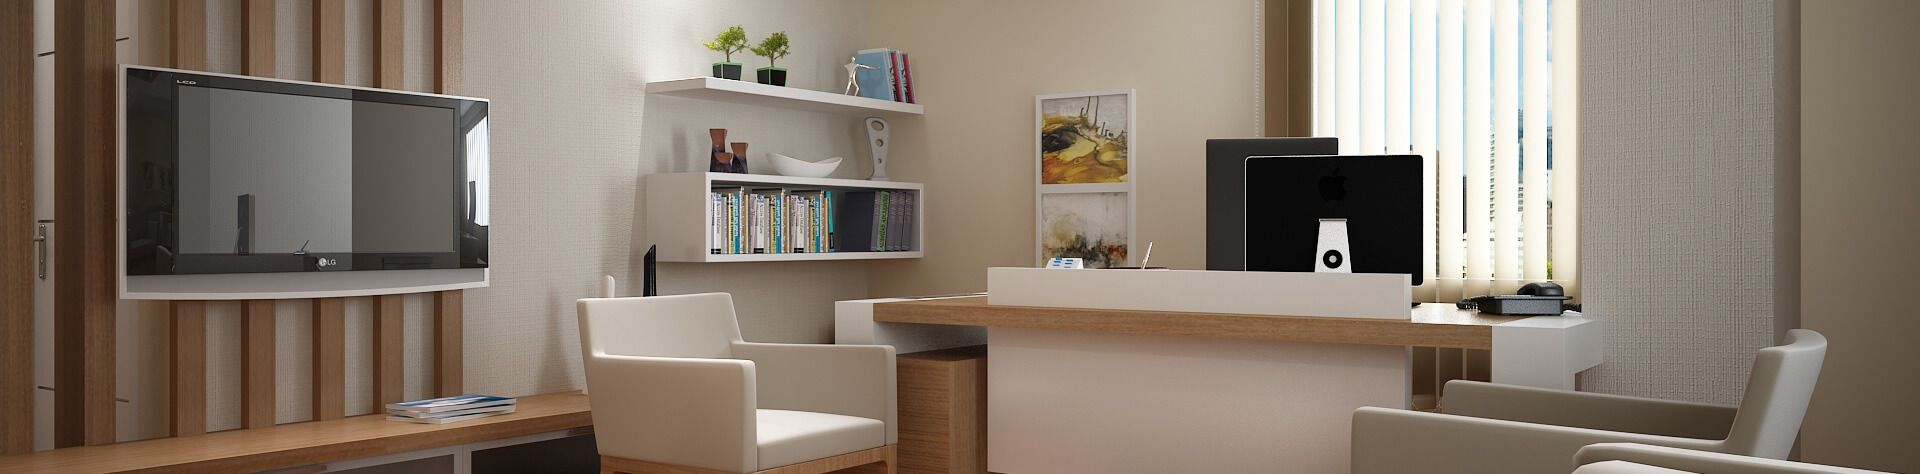 Home Office Remodeling Republic West Remodeling Phoenix Scottsdale Paradise  Valley Az